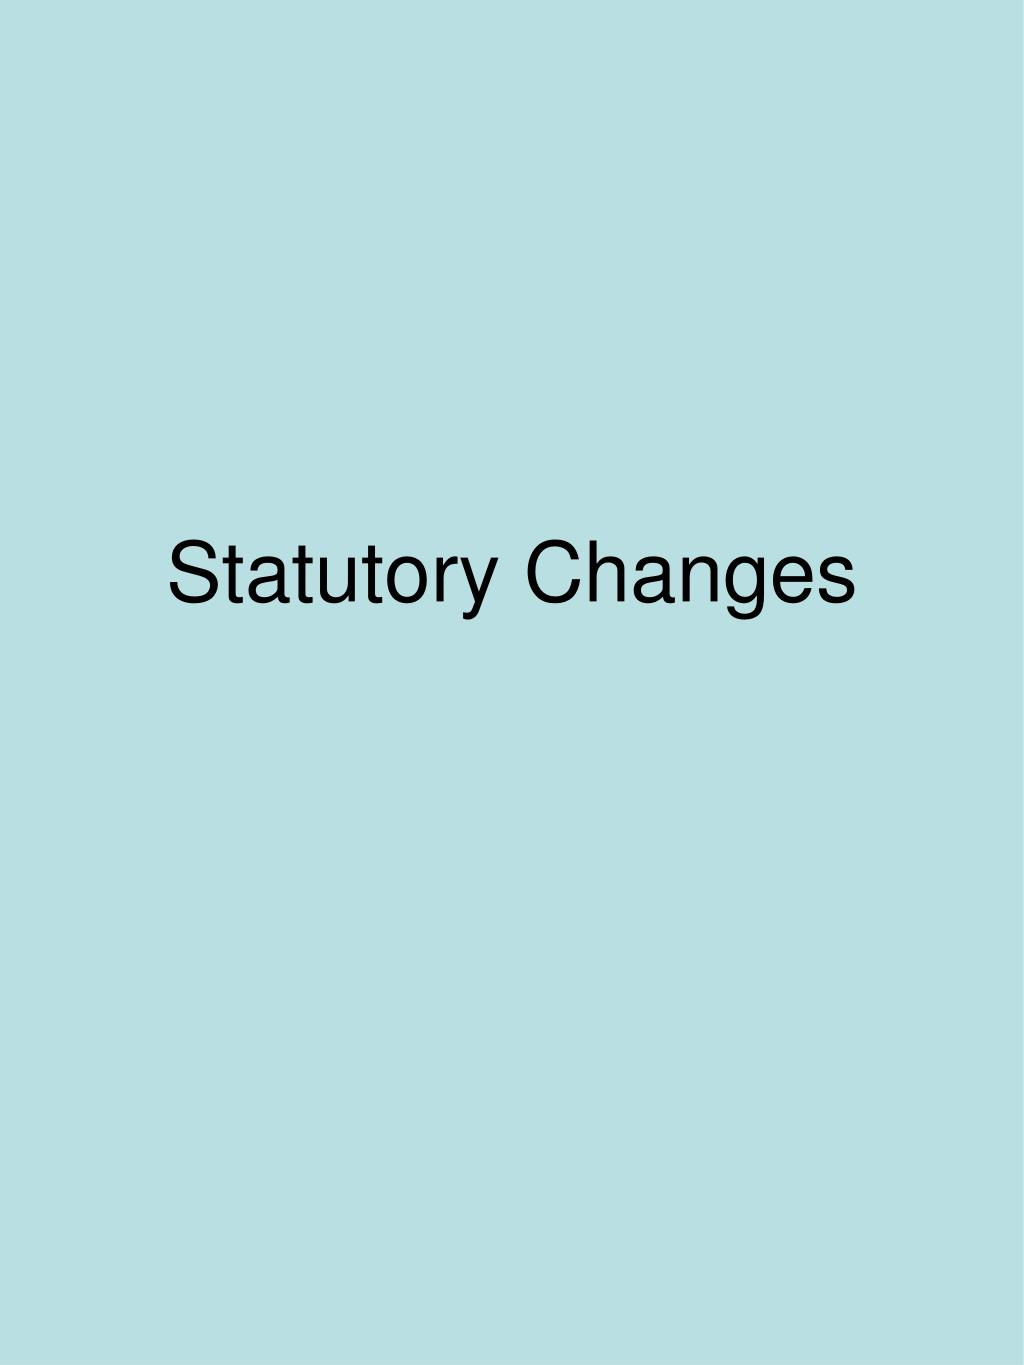 Statutory Changes